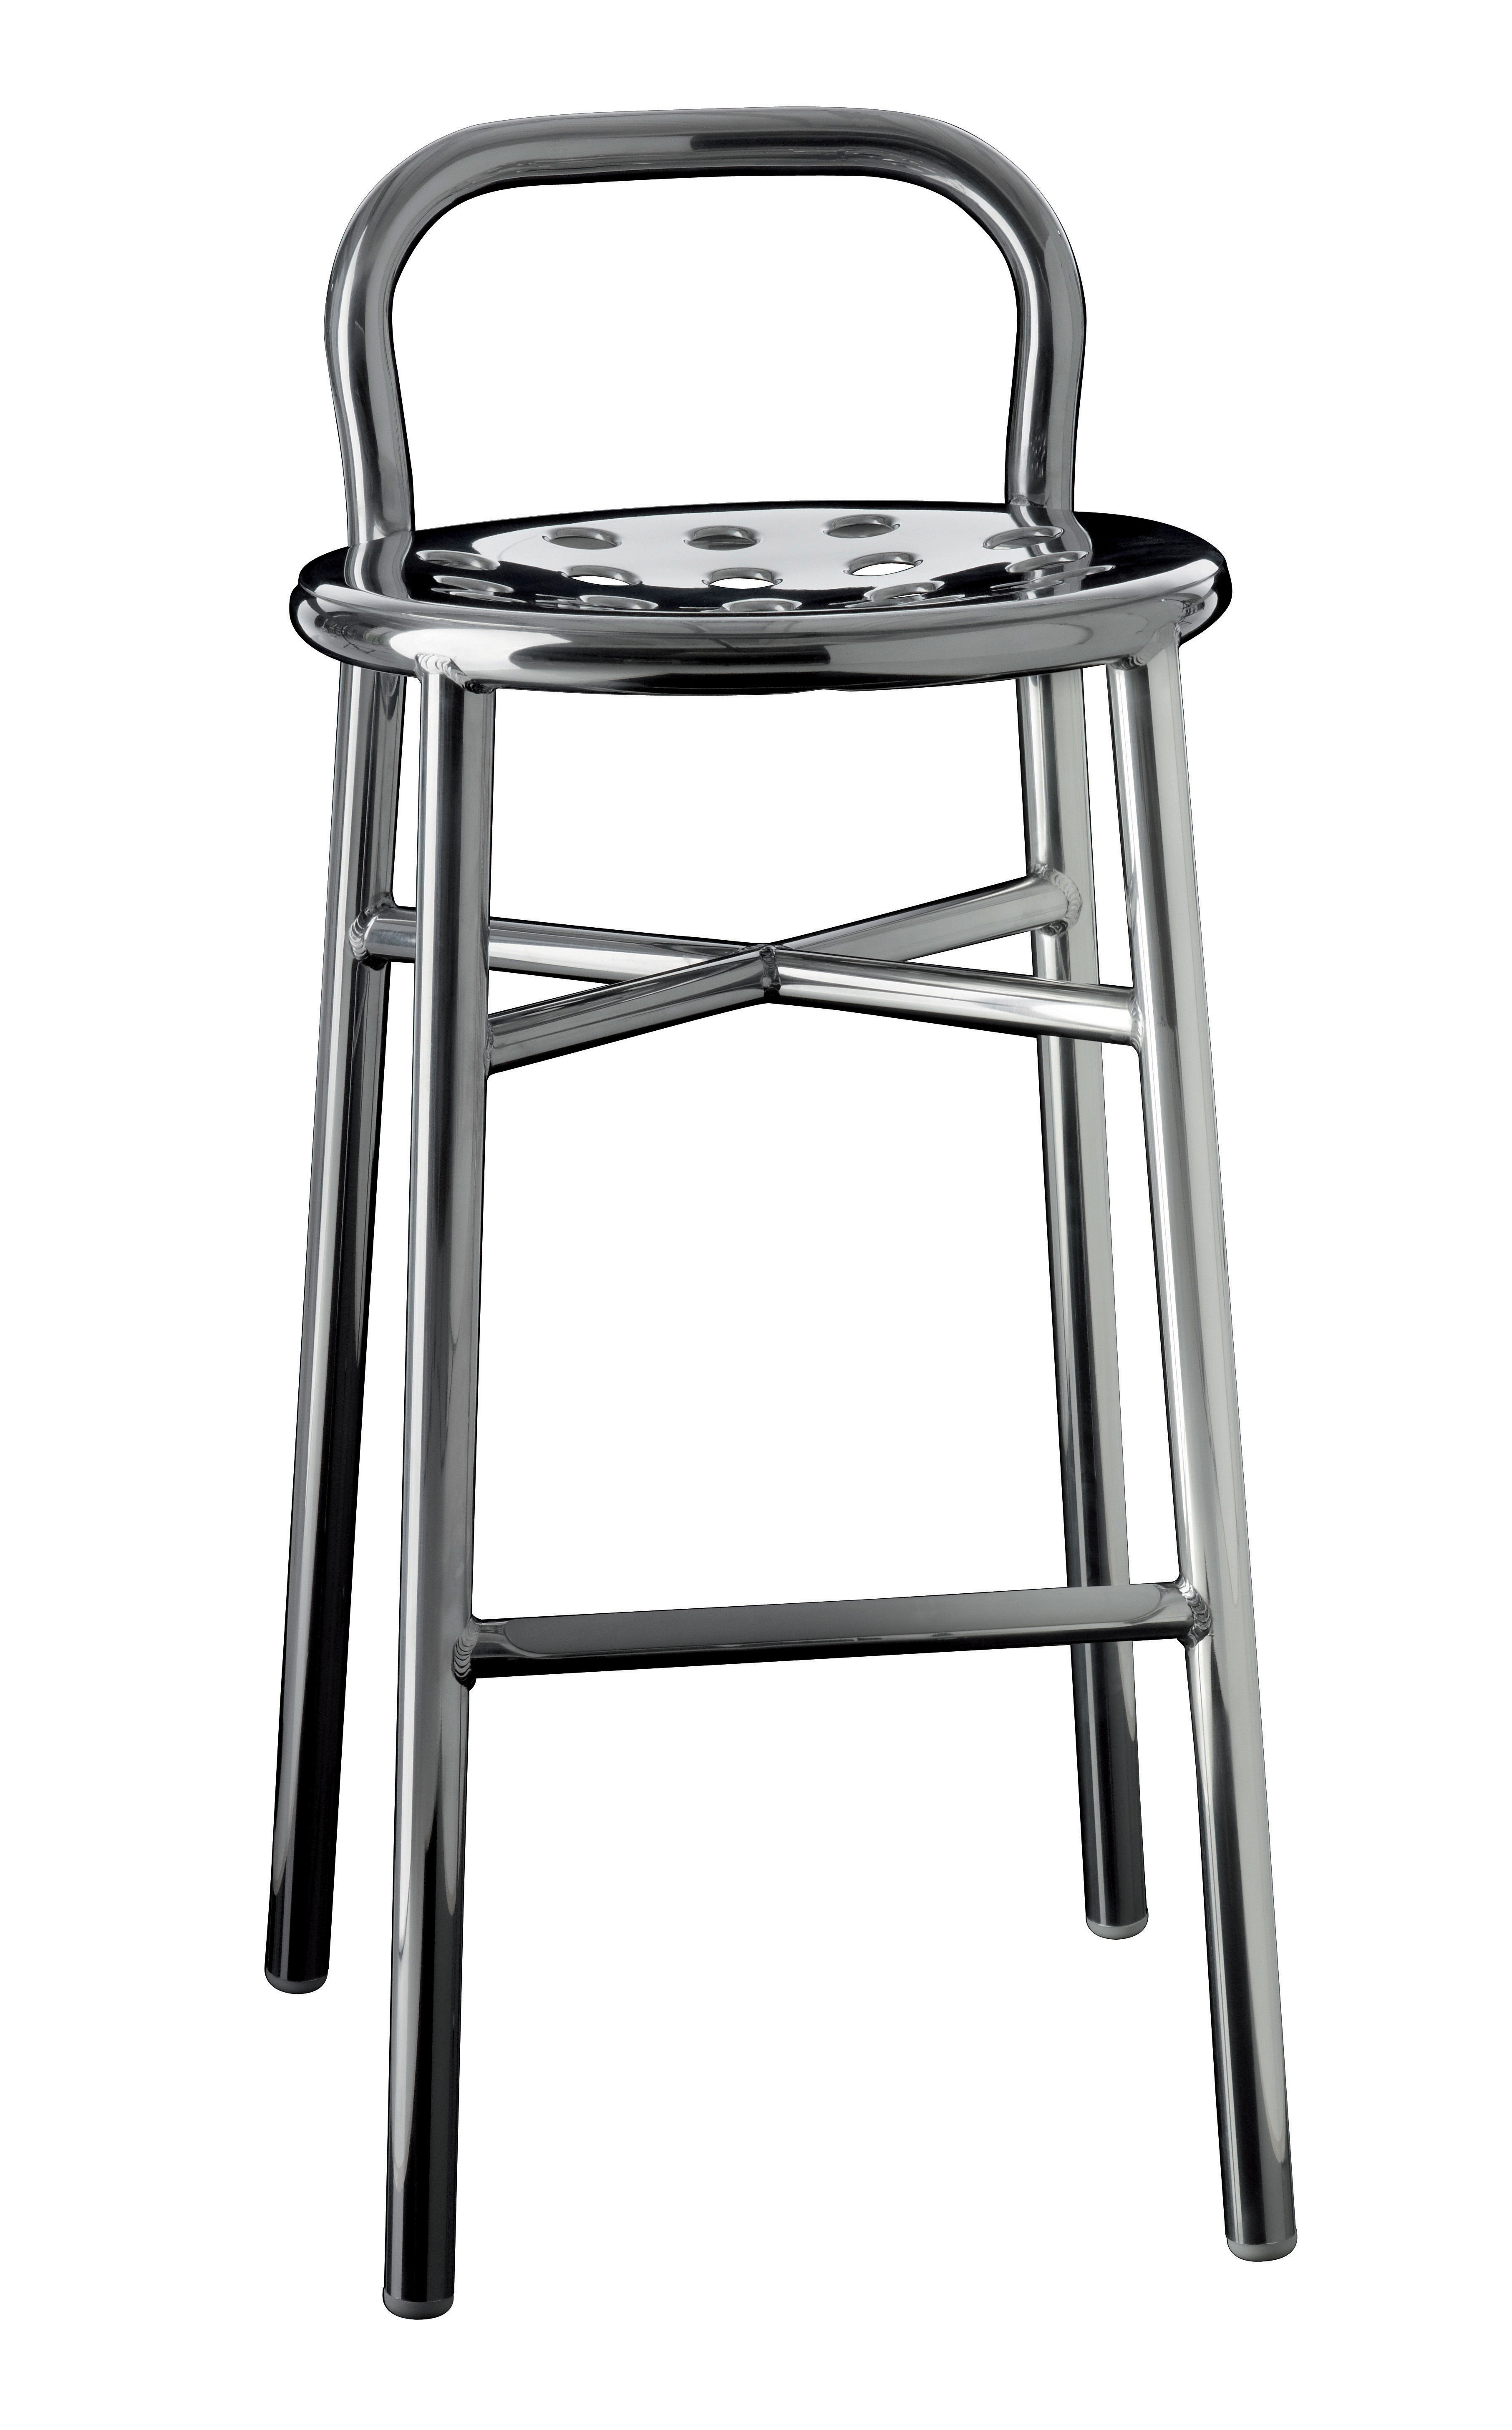 Pipe Bar stool H 77 cm Metal Polished aluminium by Magis